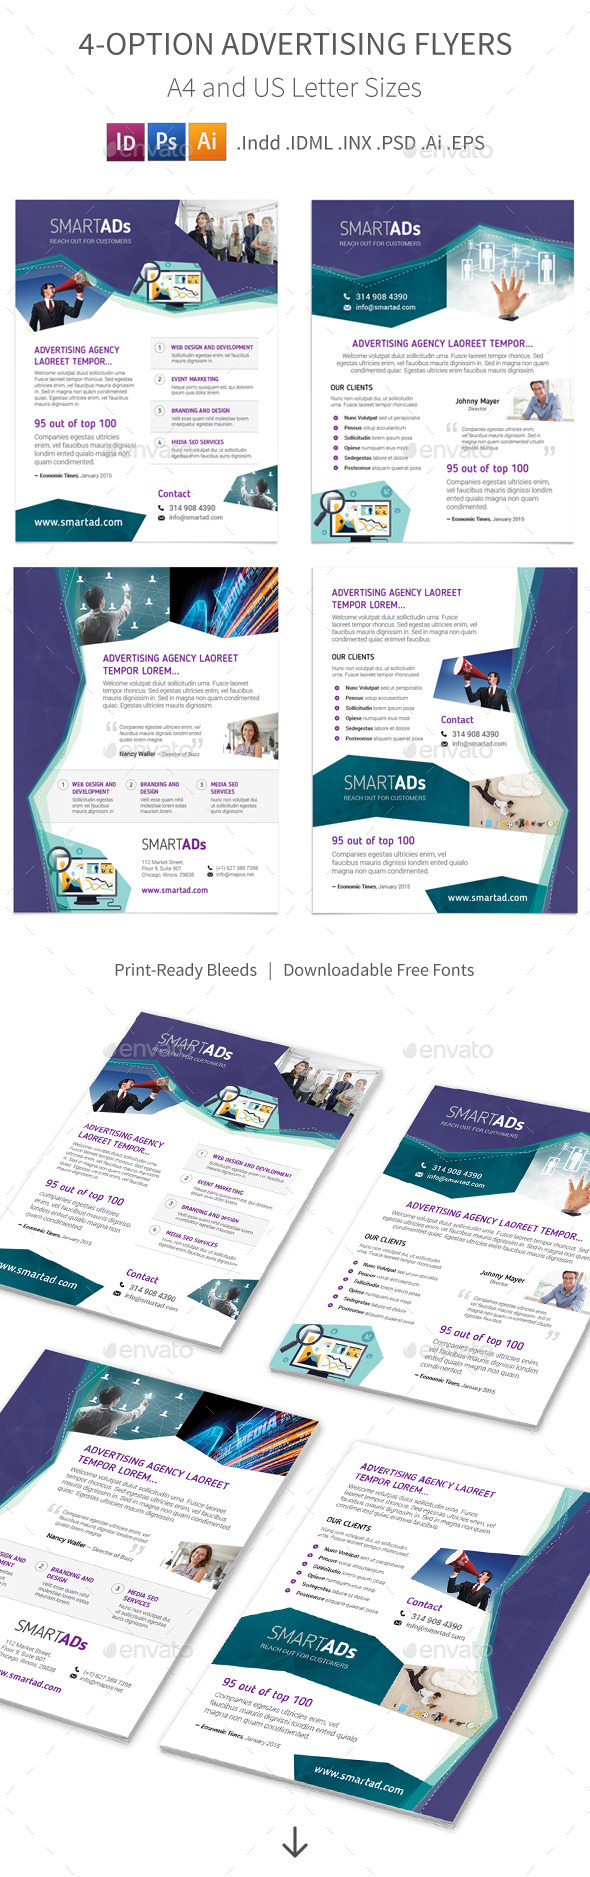 GraphicRiver Advertising Flyers 4 Options 10230952